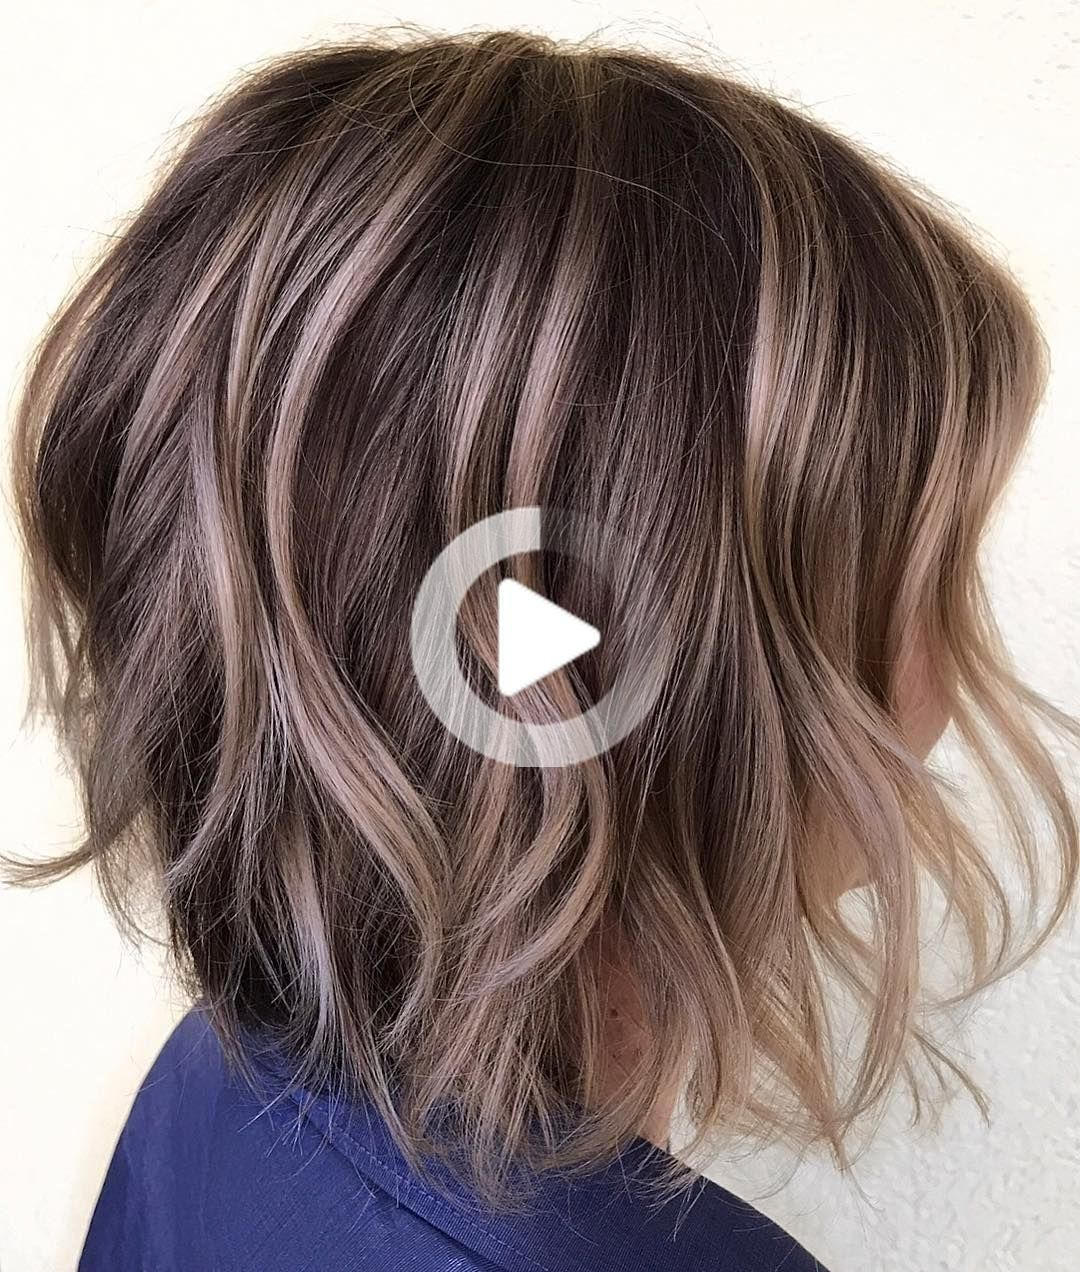 50 Layered Bobs You Will Fall In Love With In 2020 Short Wavy Hair Short Hair With Layers Wavy Hair Coiffure Cheveux Visage